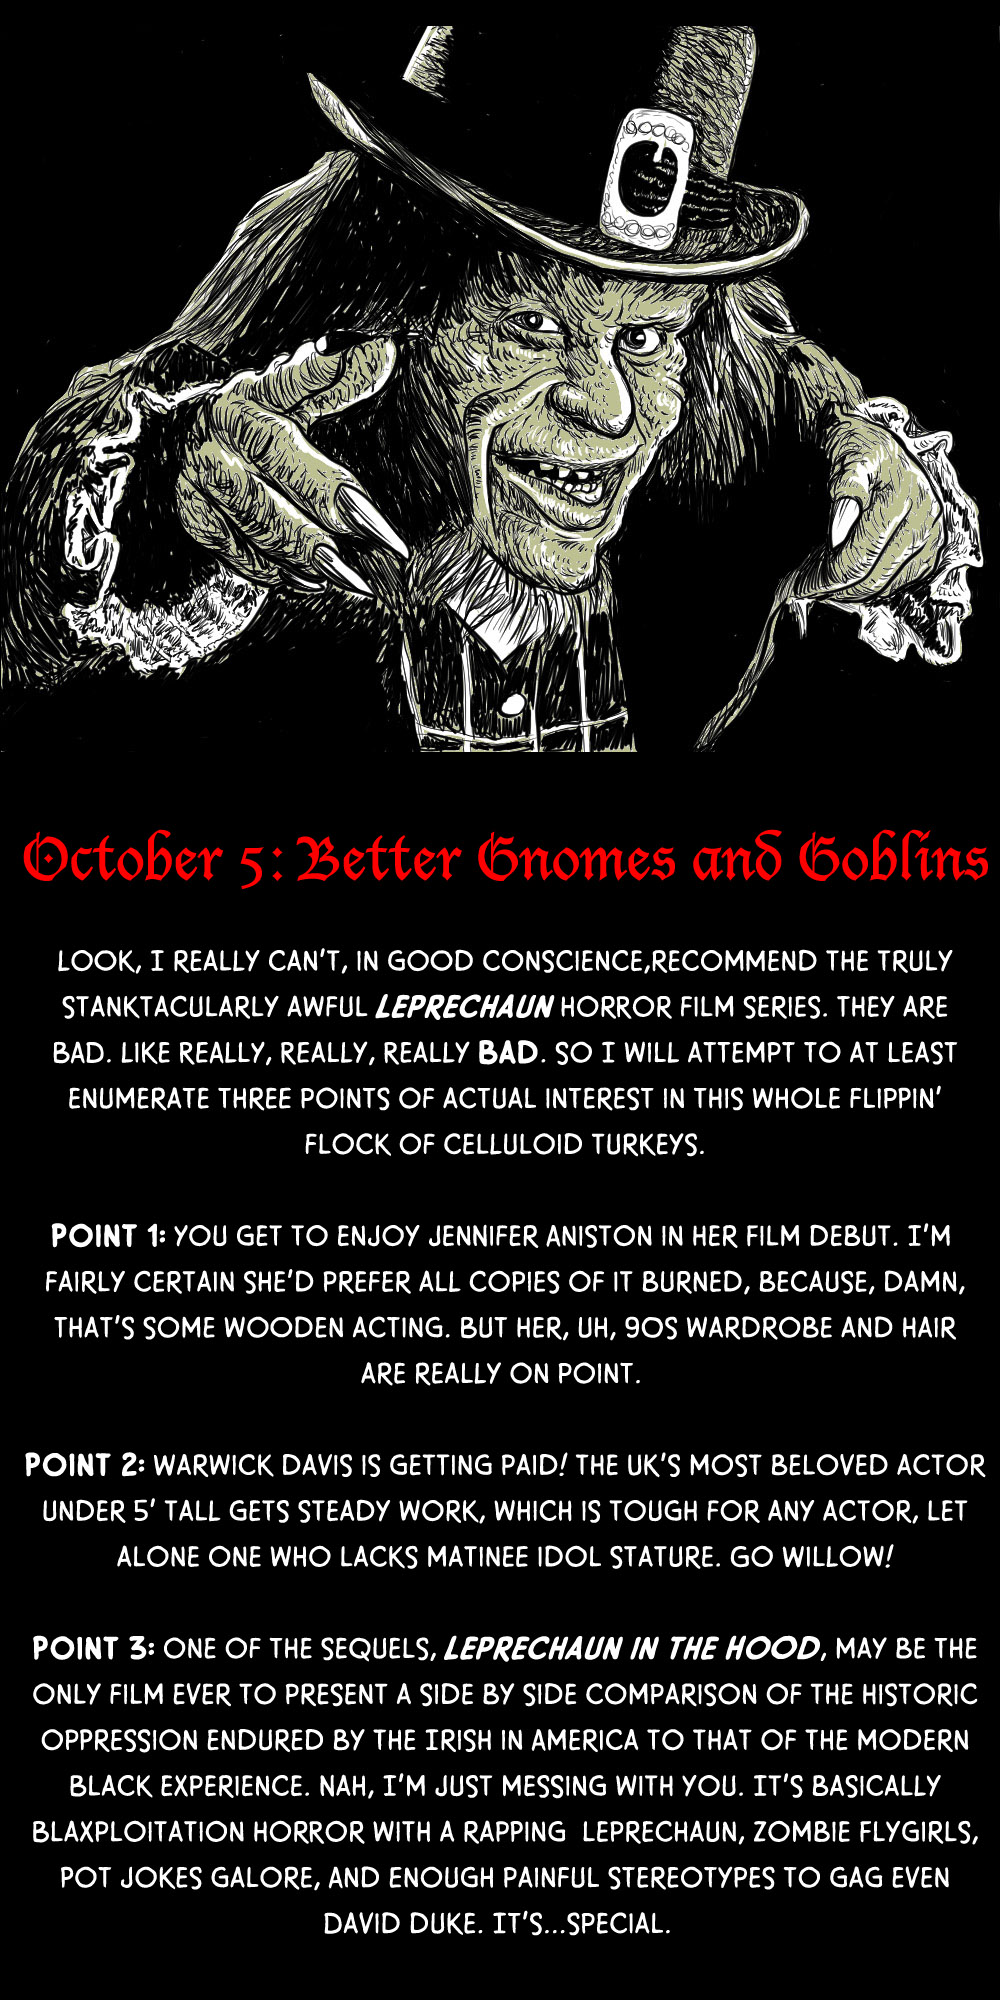 October 5: Better Gnomes and Goblins (and Leprechauns!)